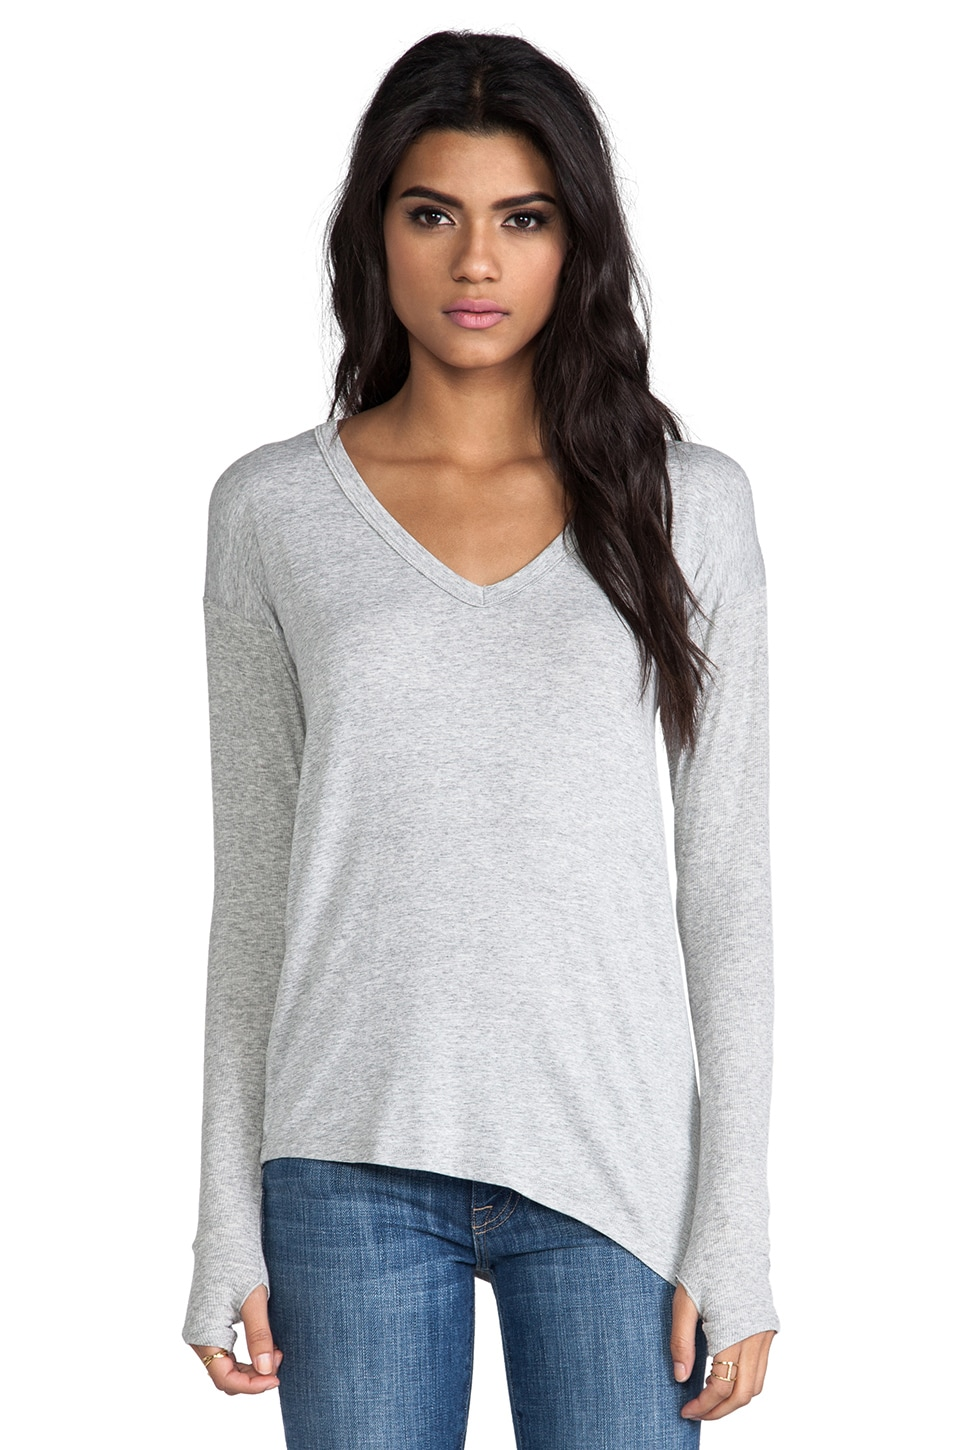 Feel the Piece Stealth Top in Heather Grey